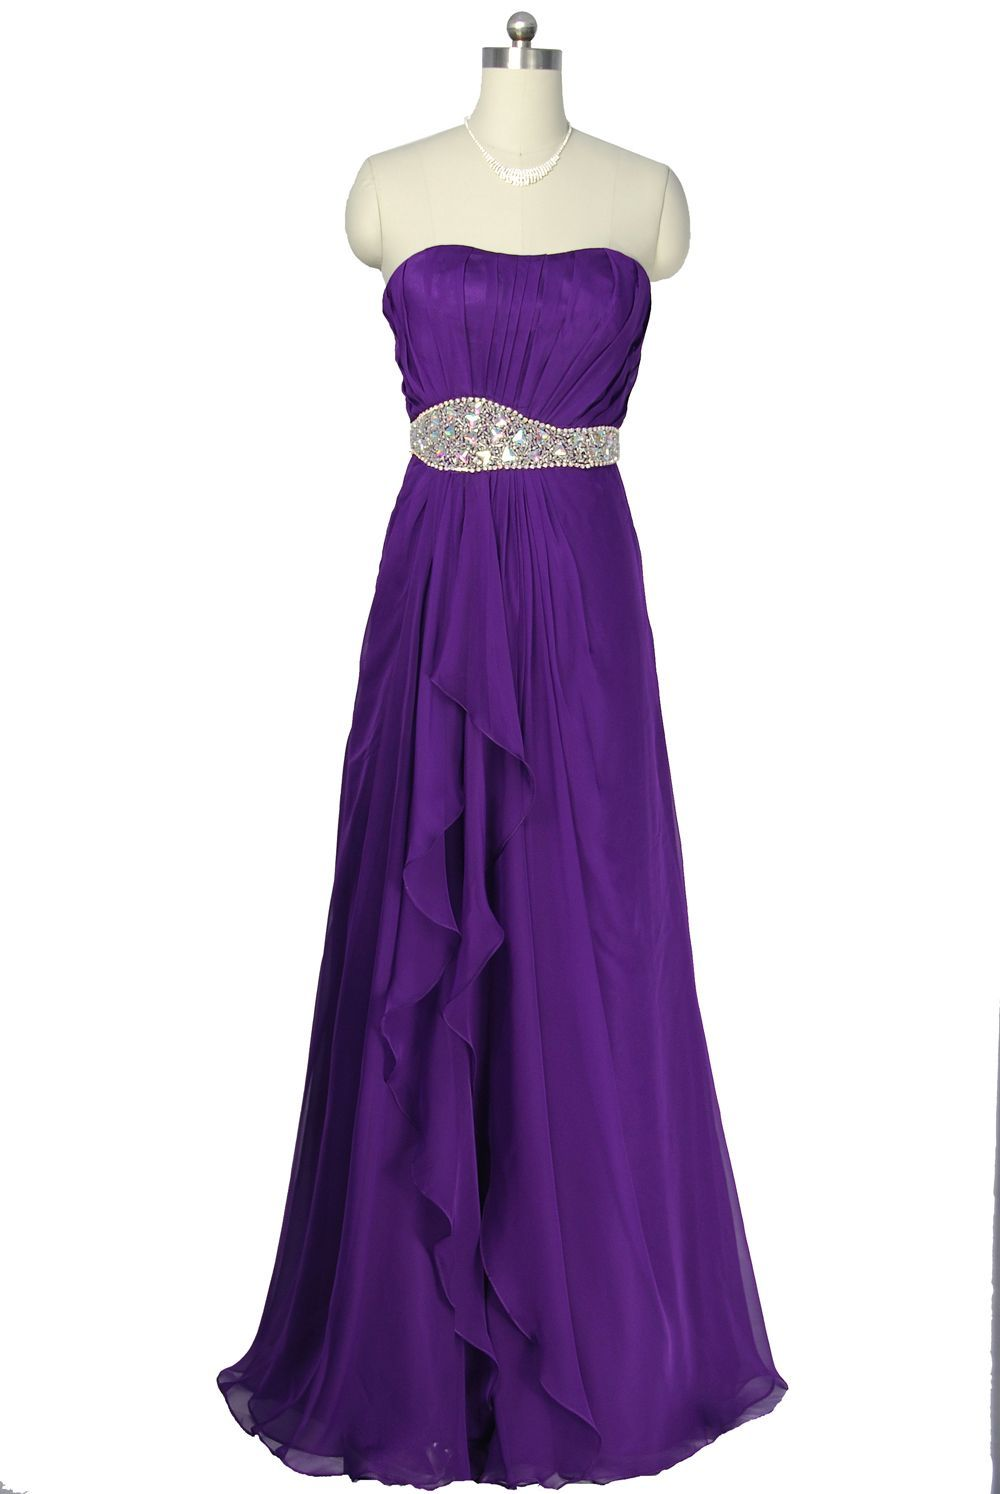 purple evening dresses | ... Purple Luxury Design Chiffon Evening ...